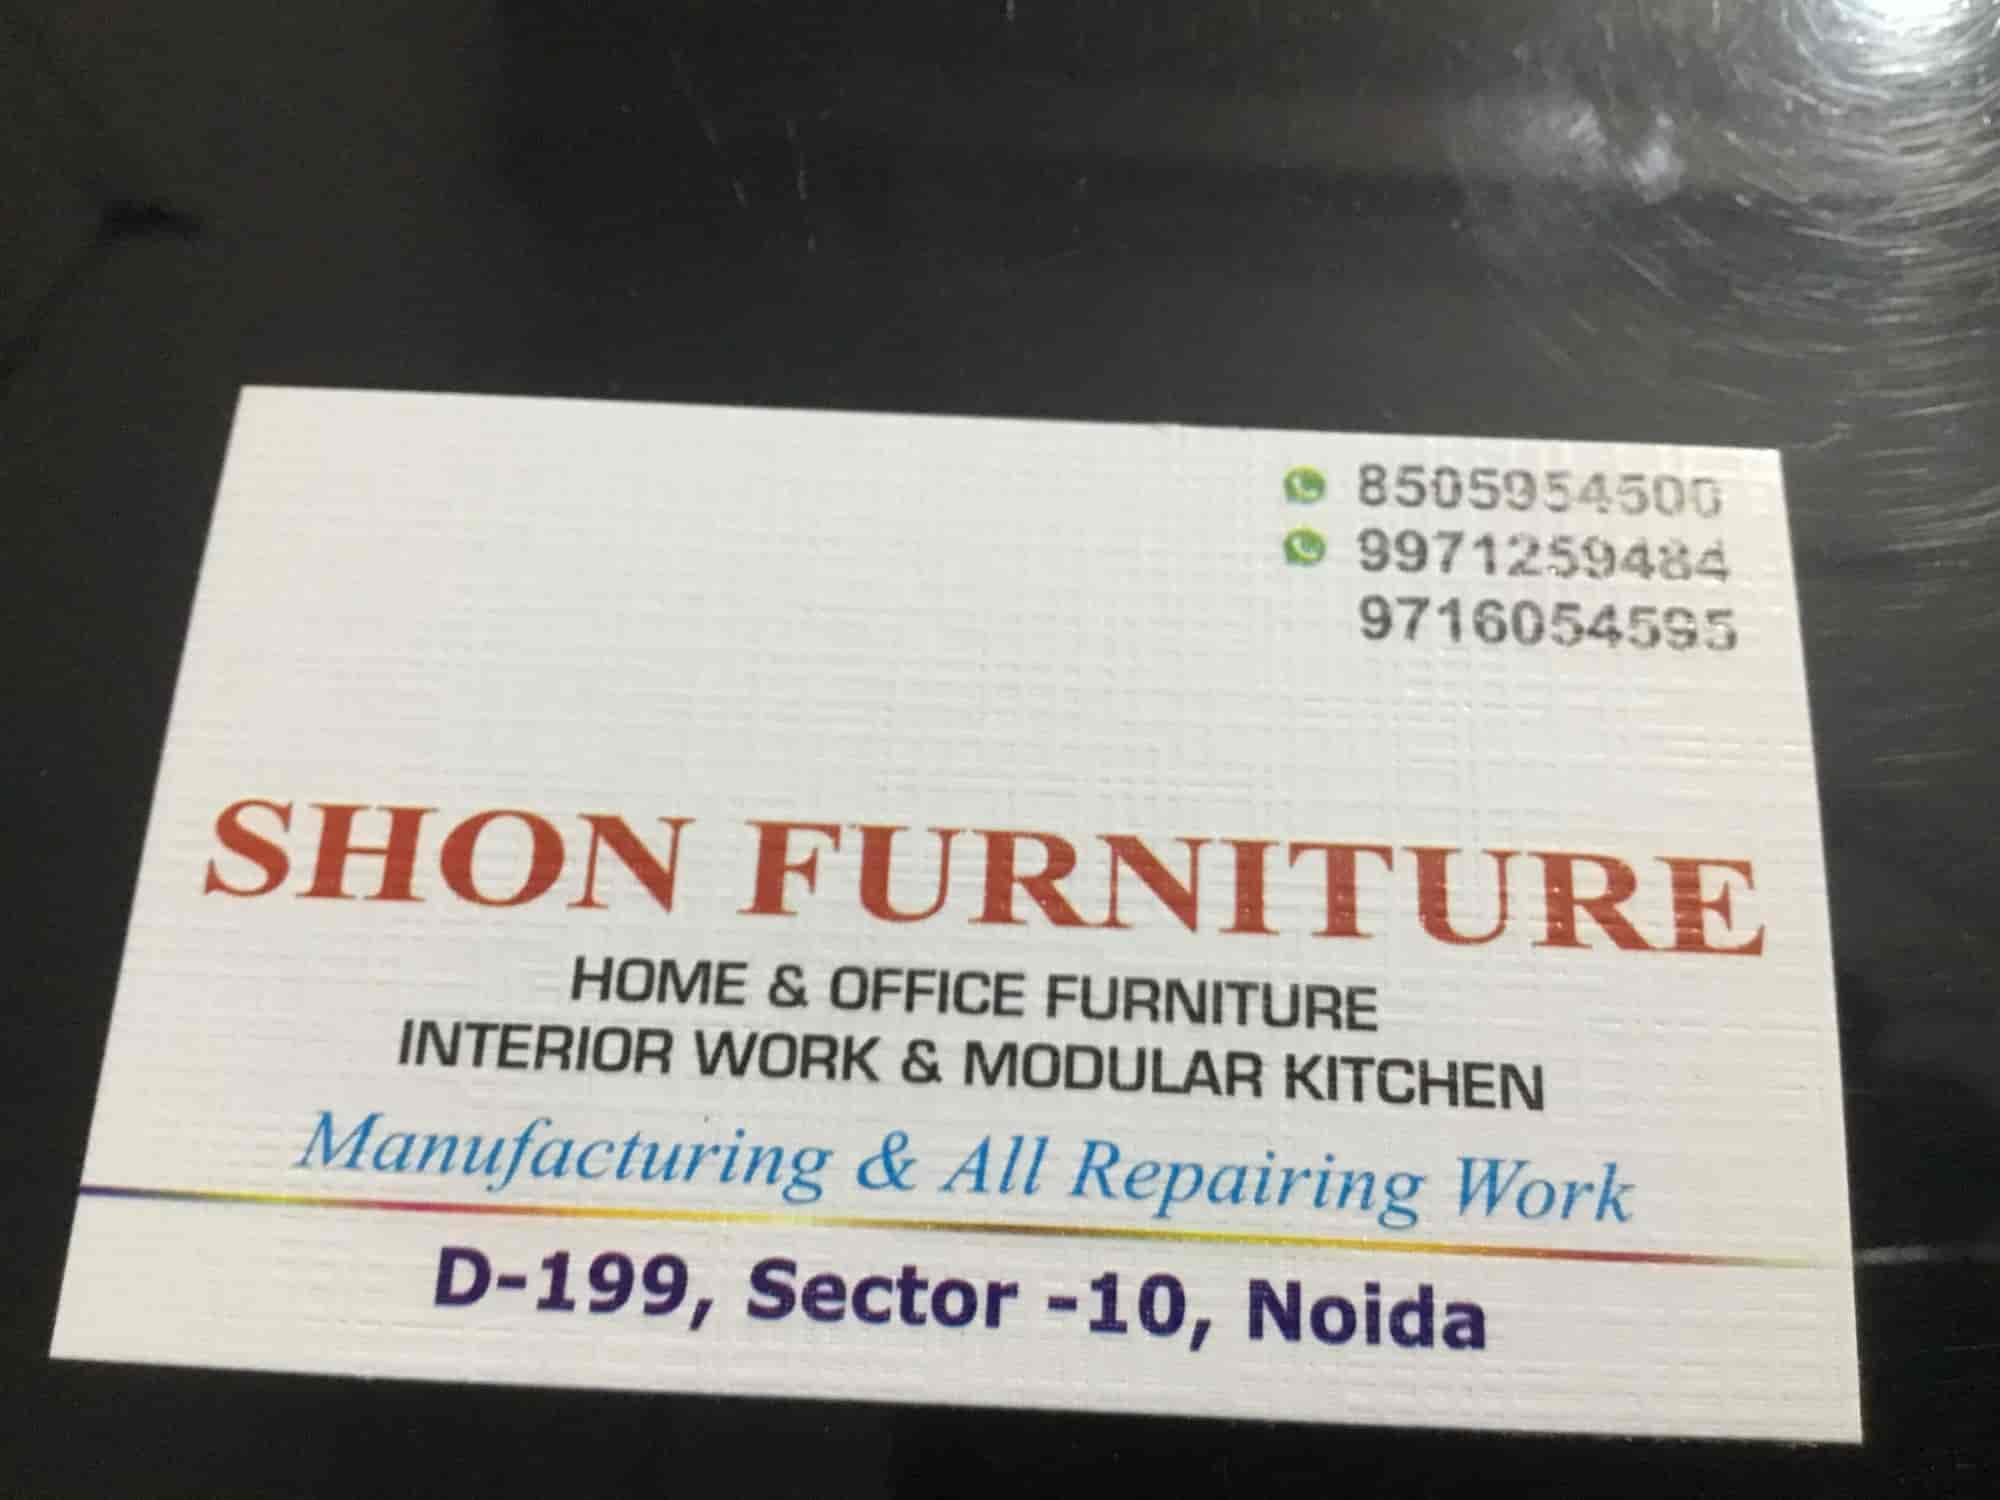 Shon Furniture Photos, Sector 10, Noida- Pictures & Images Gallery ...